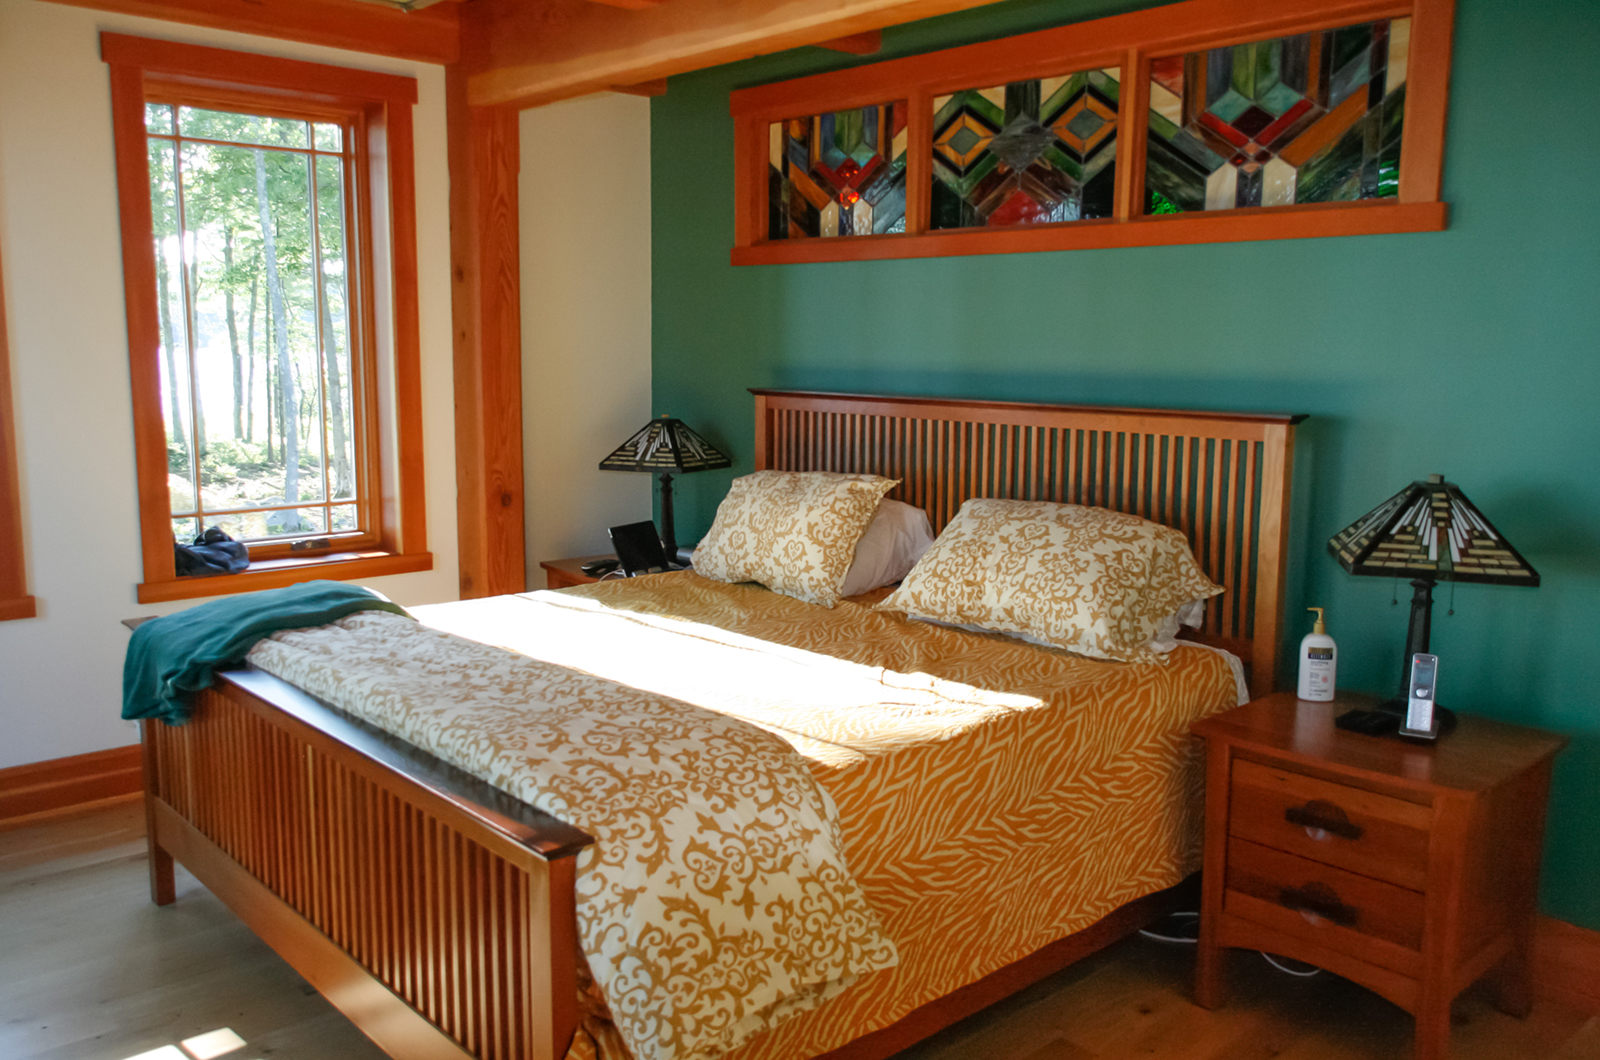 Classic Bensonwood lake house bedroom